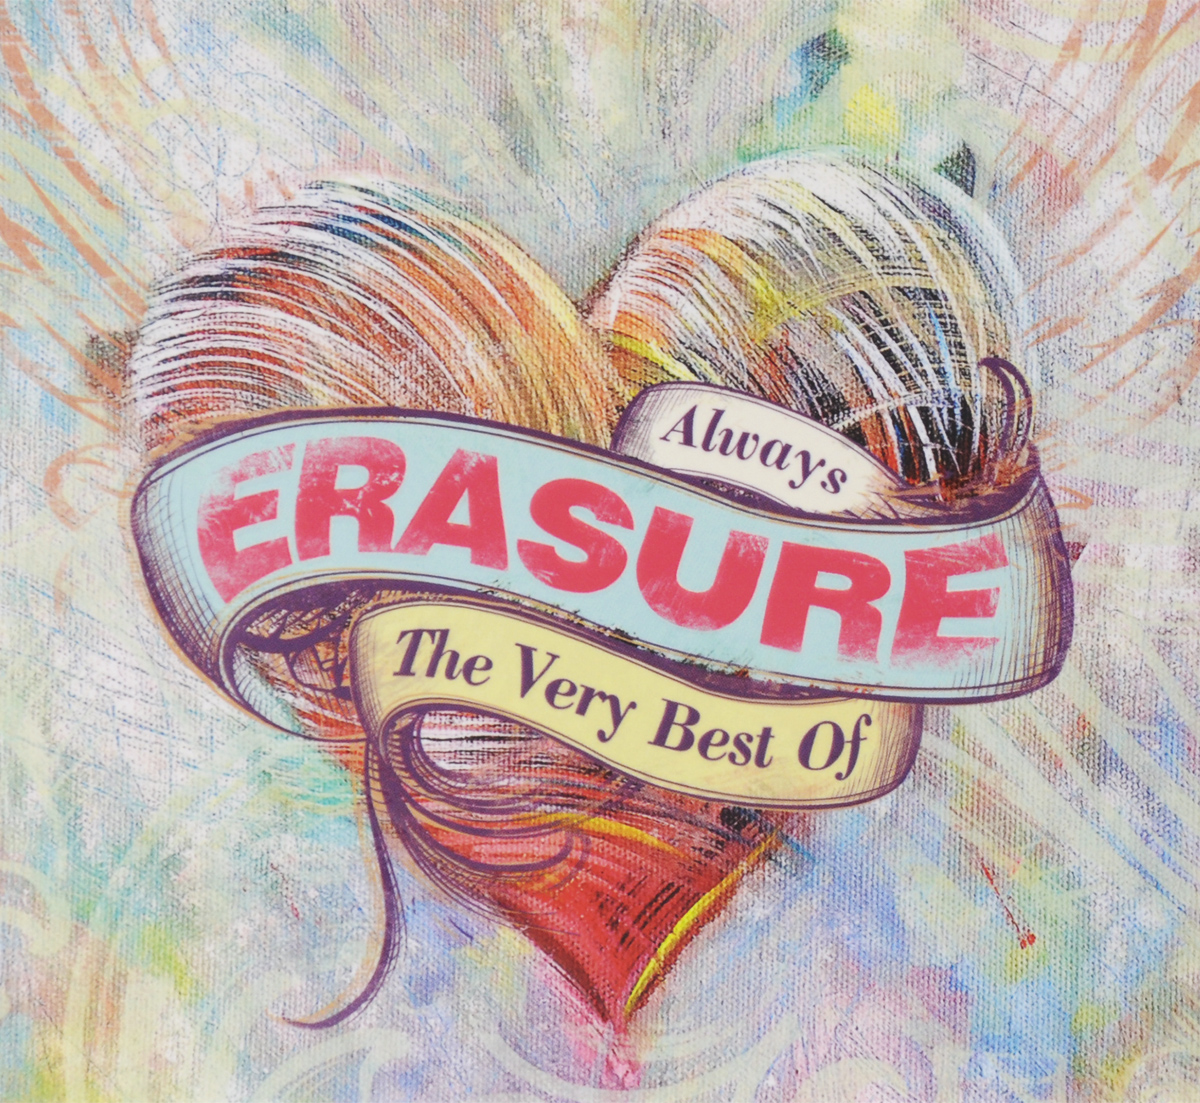 Erasure. Always. Very Best Of